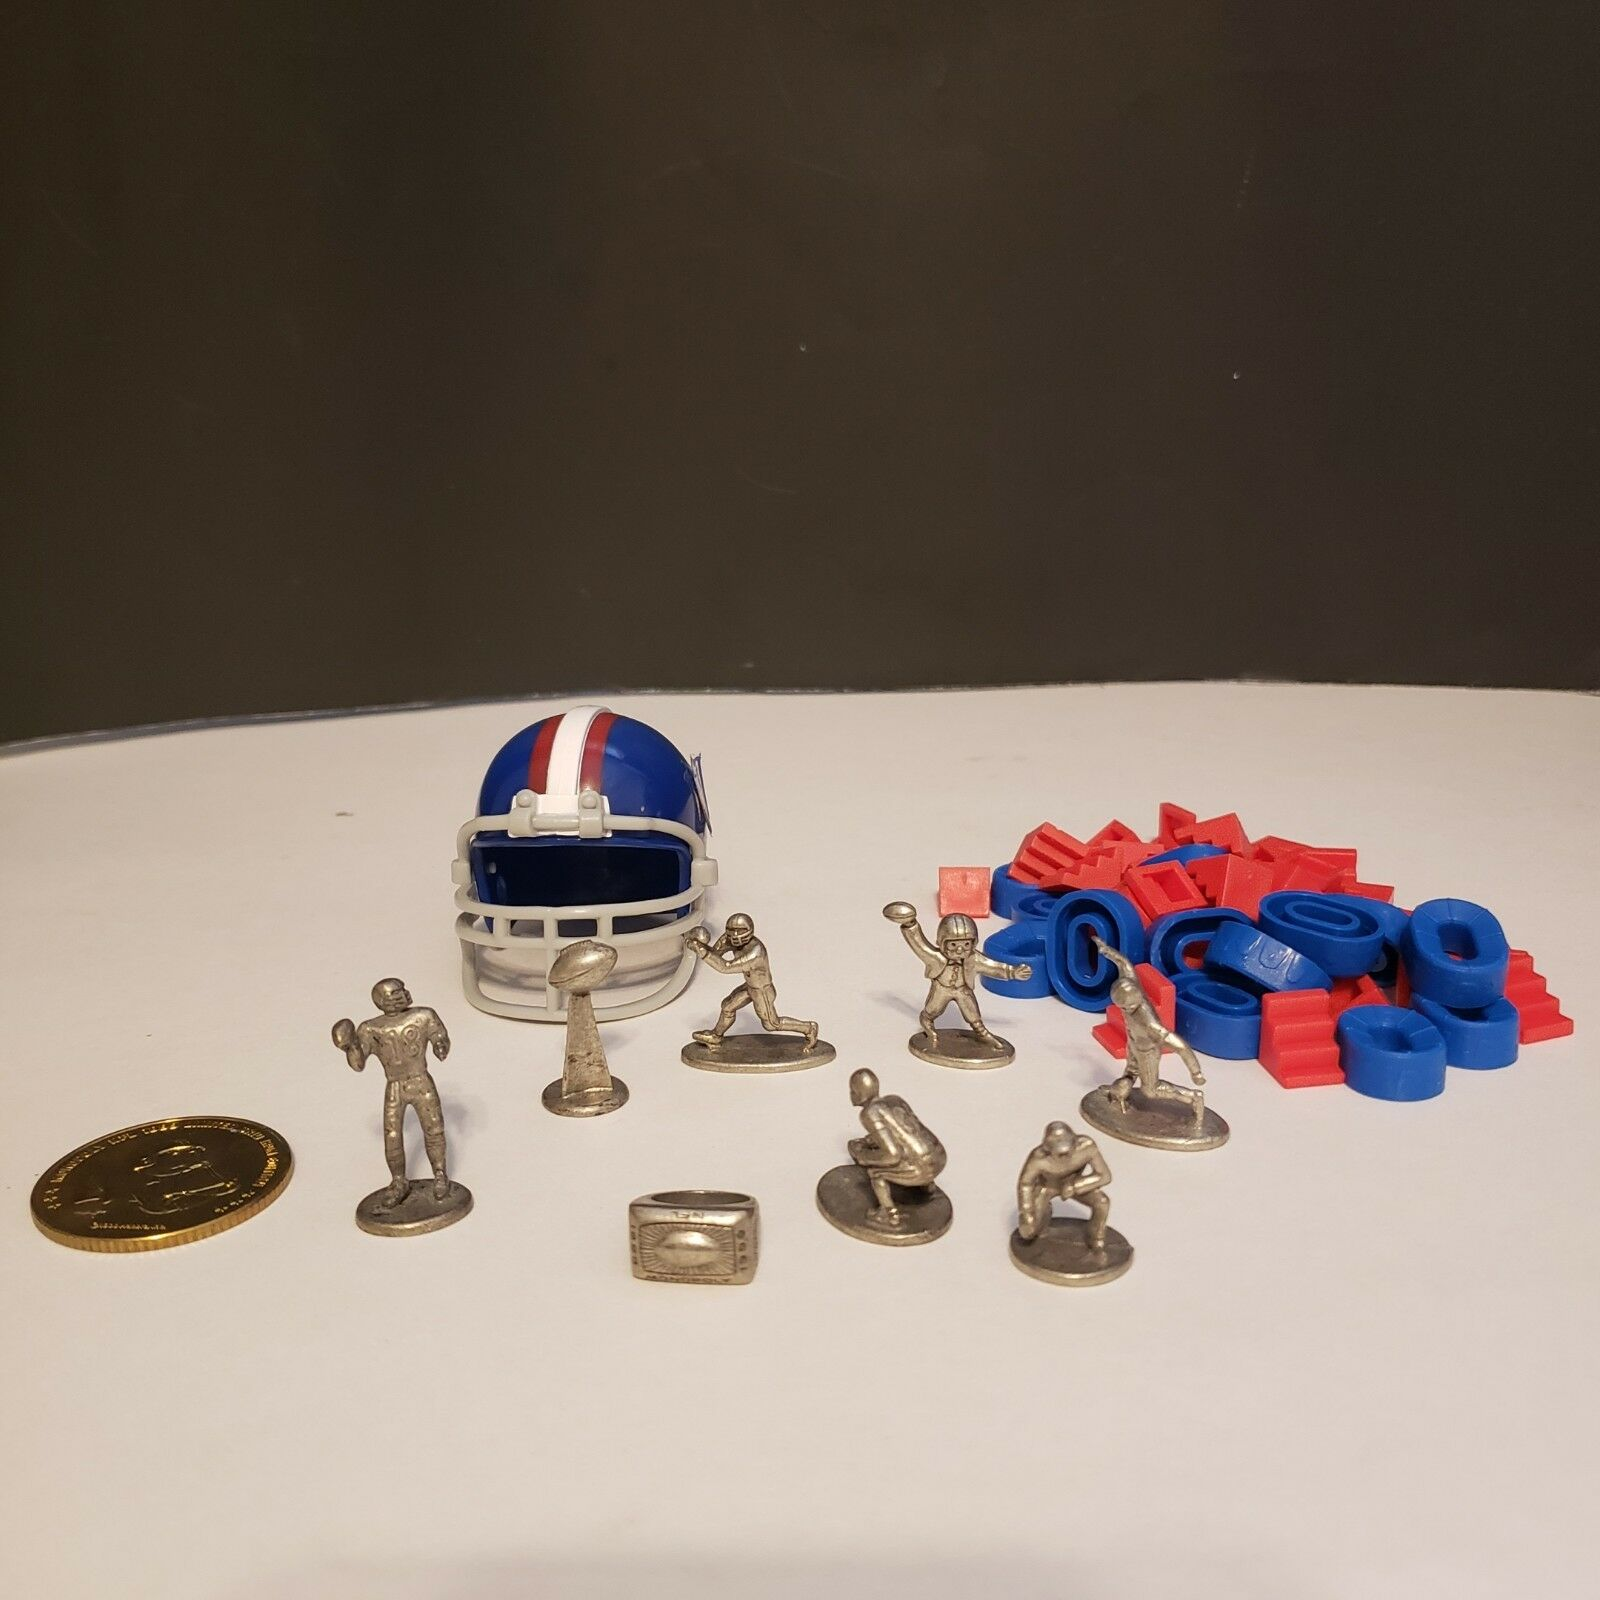 1999 Monopoly NFL Board Pewter Game Edition Pewter Board Token and Replacement Pieces Parts 043c1d